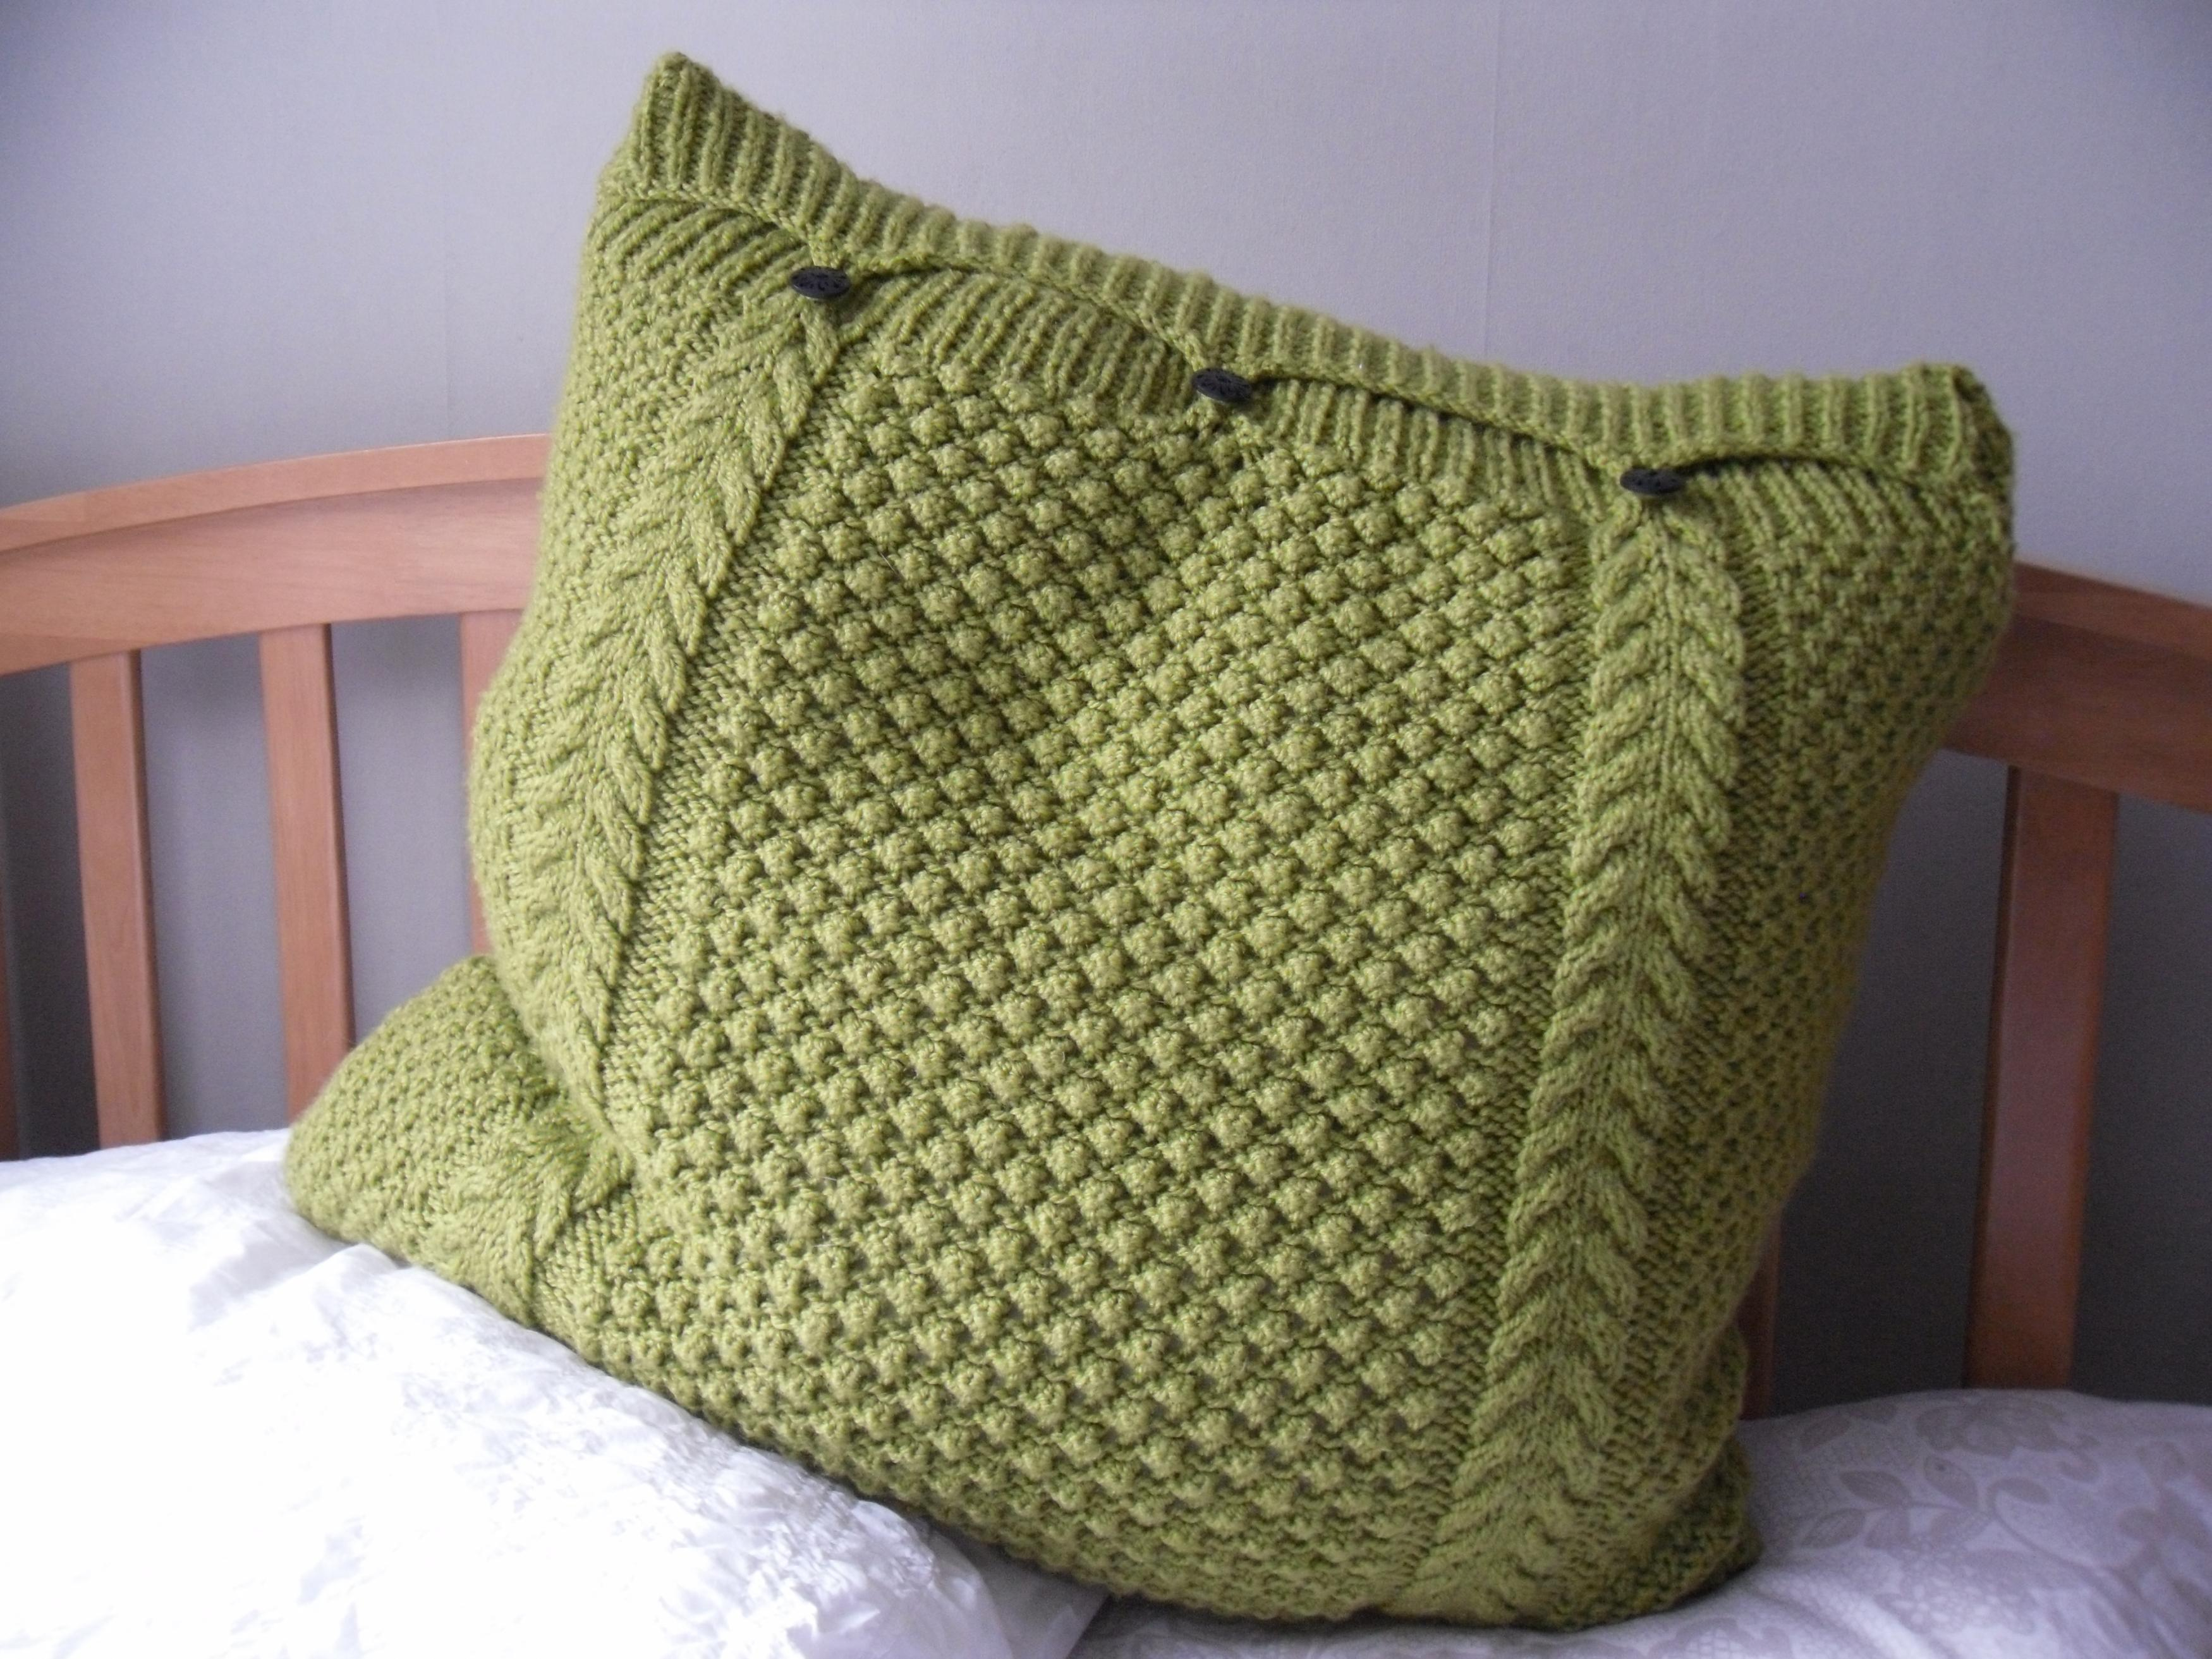 Knitting Pattern For Cushion Cover With Cables Large Lime Green Pillow Cushion Cover Hand Knitted Cable Bobbles 3 Button Fastening